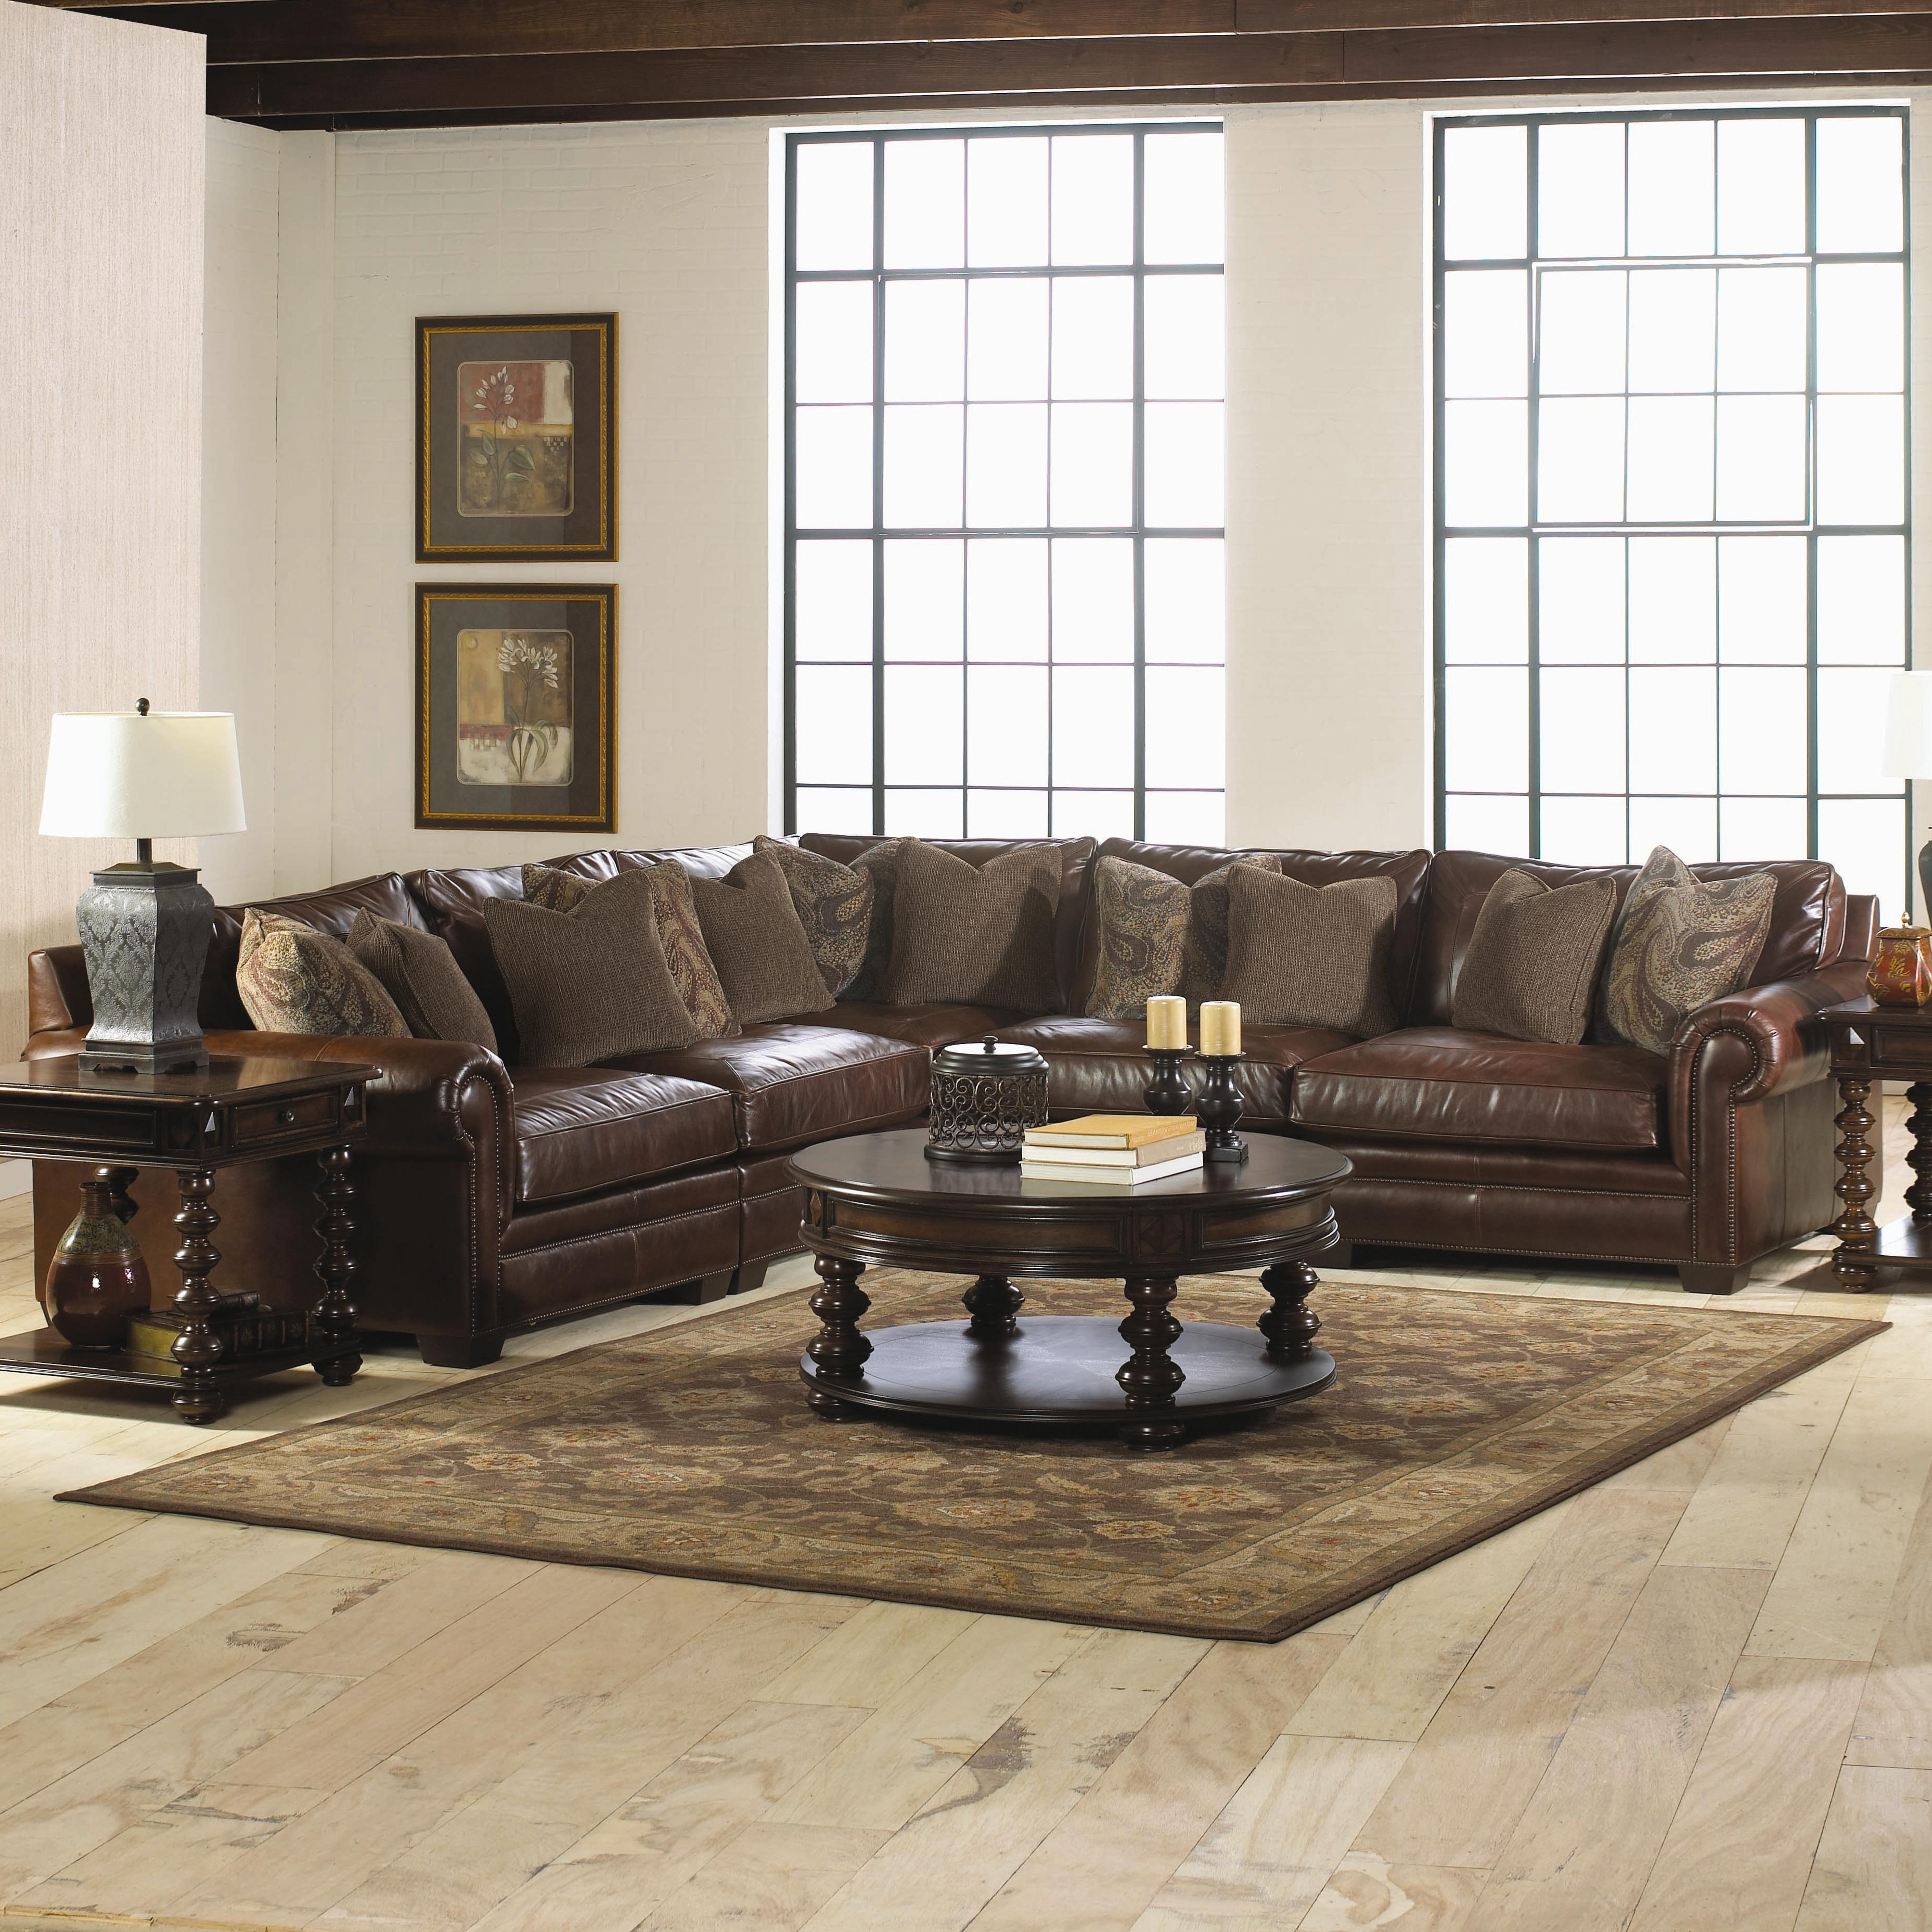 Most Current Havertys Sectional Sofas Pertaining To Furniture & Sofa: Glamorous Interior Furniture Designhavertys (View 13 of 20)